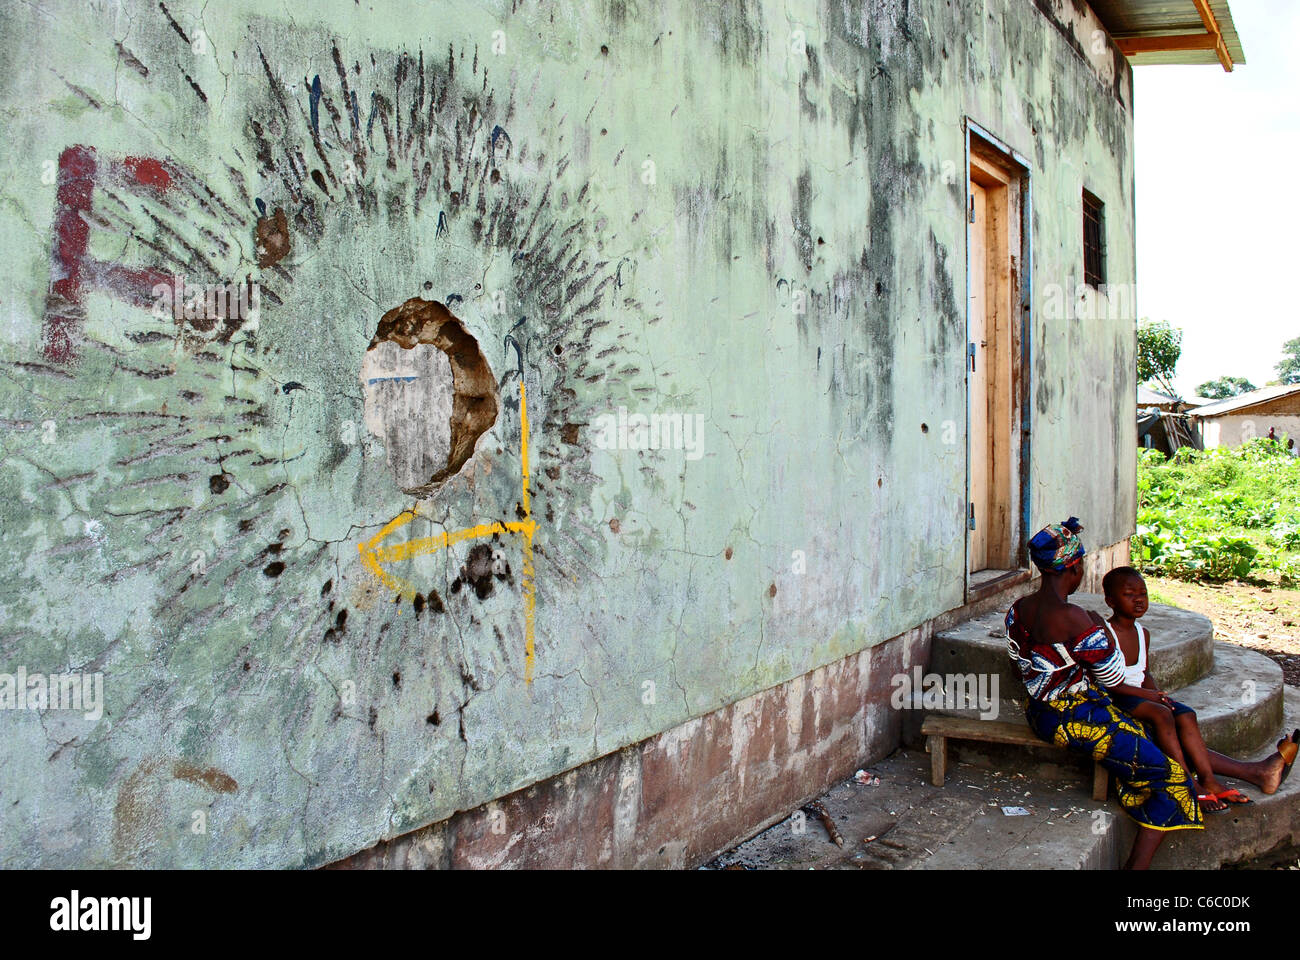 A mother and child sit beside a hole in their house, damaged during the civil war in Liberia, West Africa - Stock Image